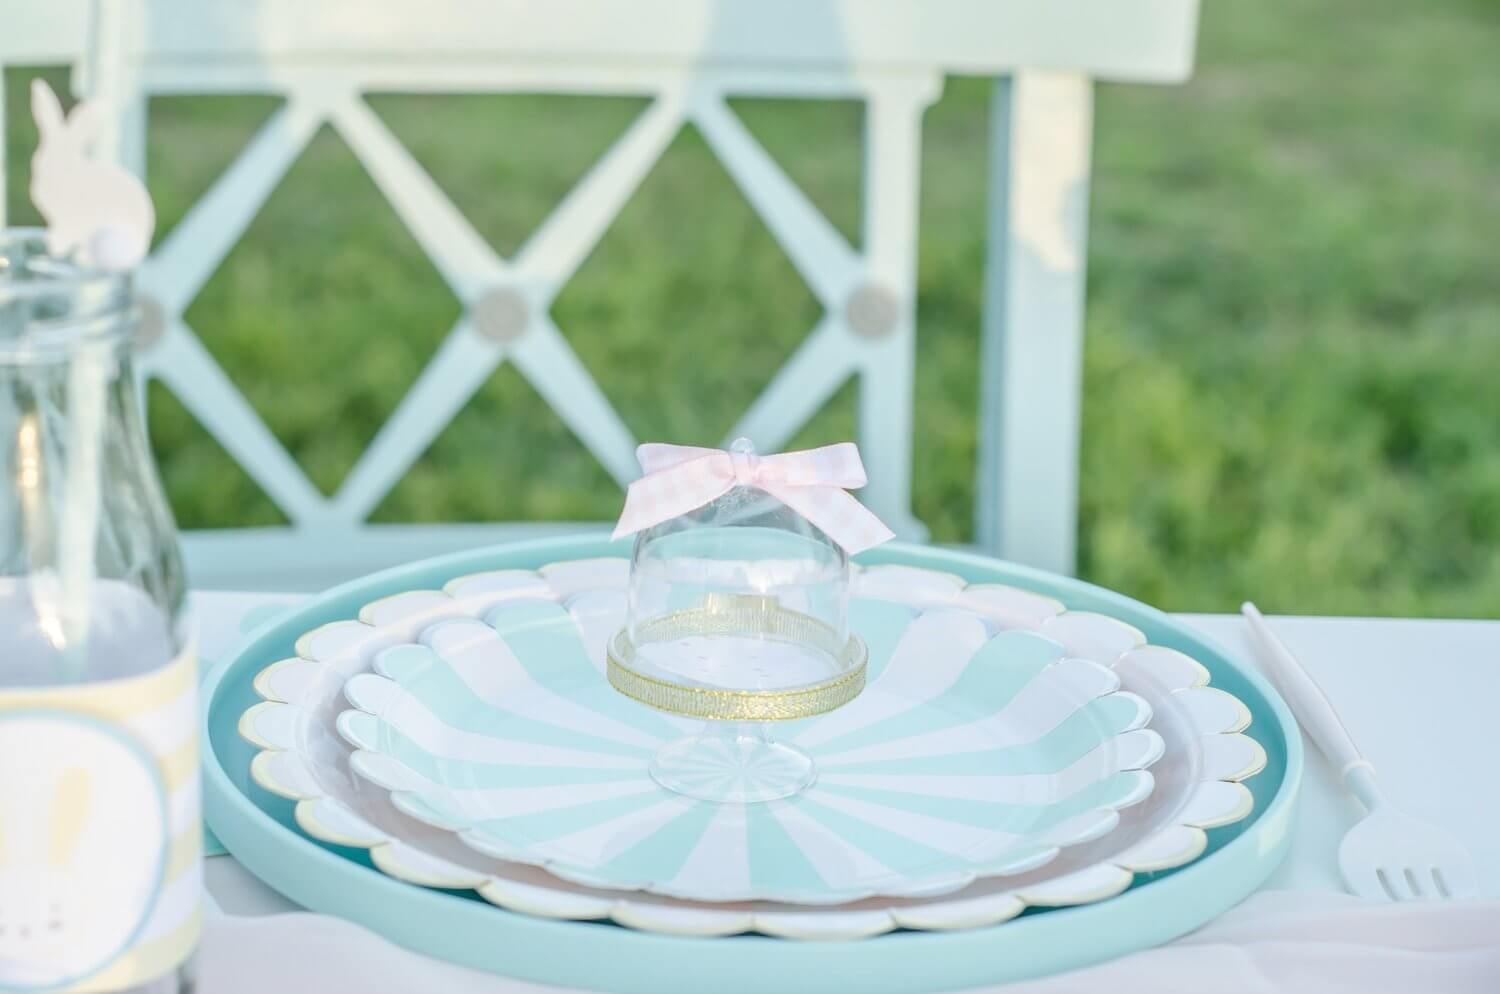 Pretty party paper supplies for an Easter garden party include the cutest mini cupcake stand. Styling by Mint Event Design www.minteventdesign.com #easterparty #gardenparty #partysupplies #tablescape #eastertable